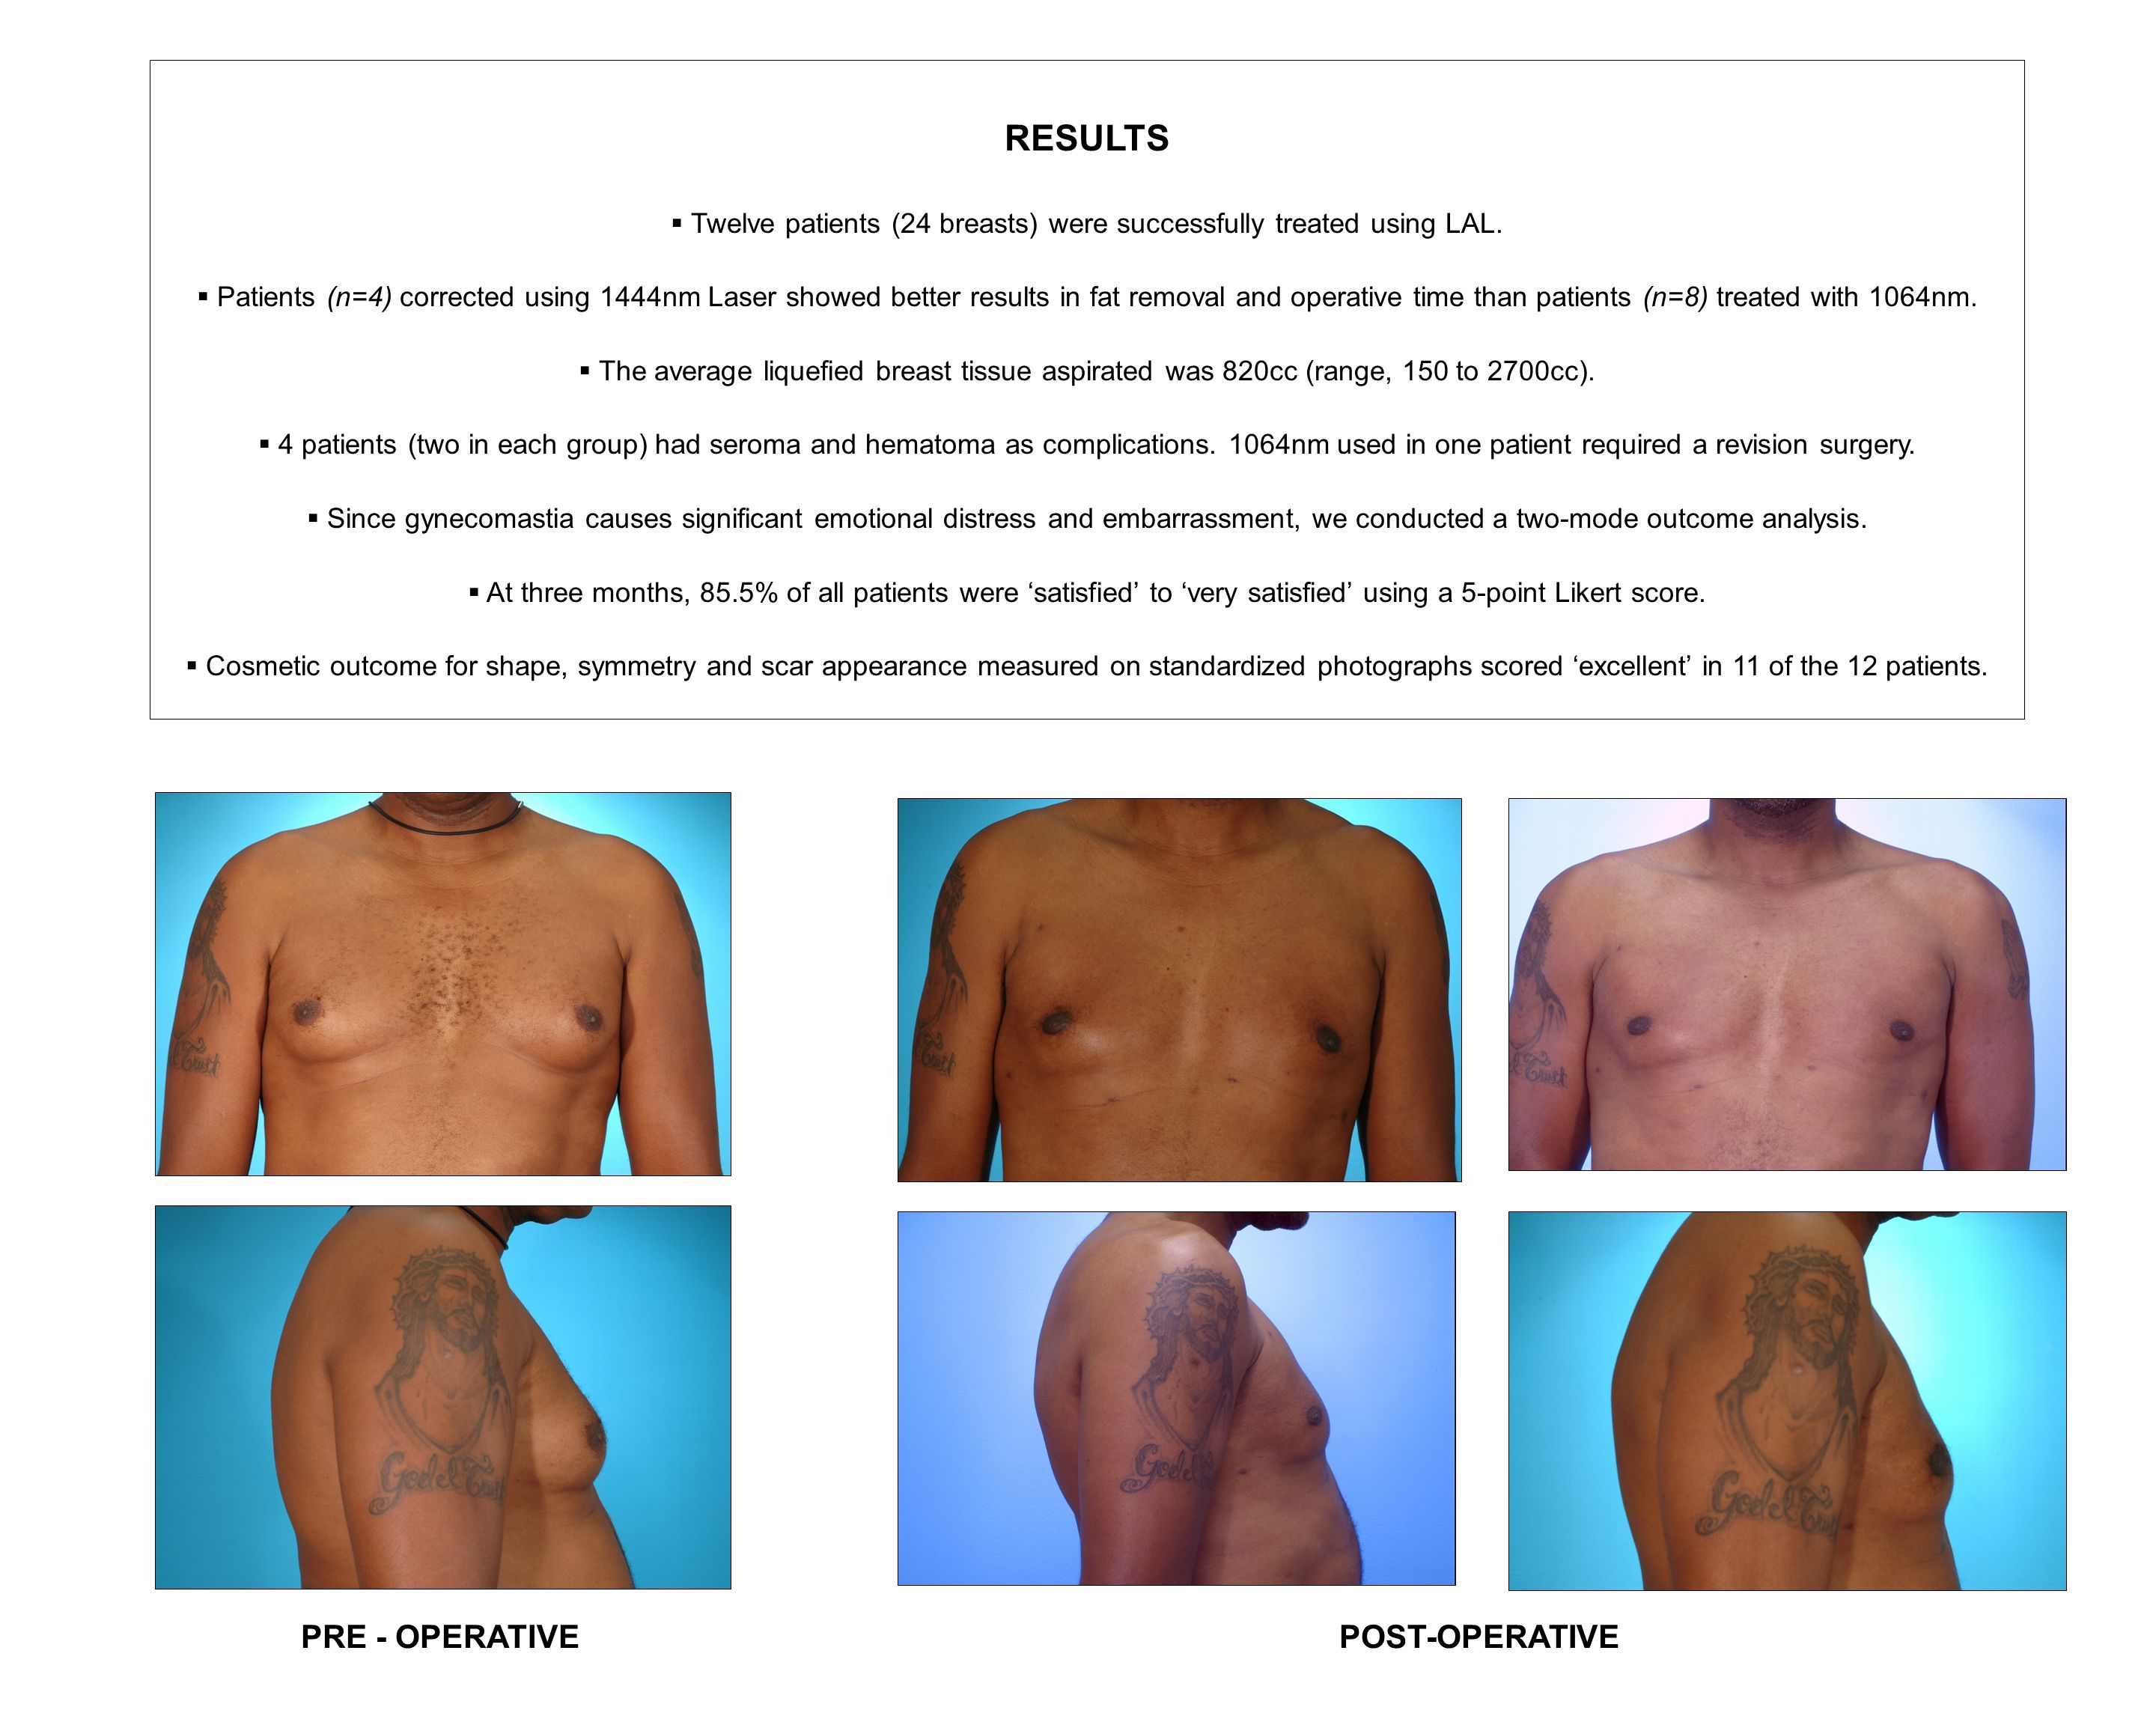 Twelve patients (24 breasts) were successfully treated using LAL.